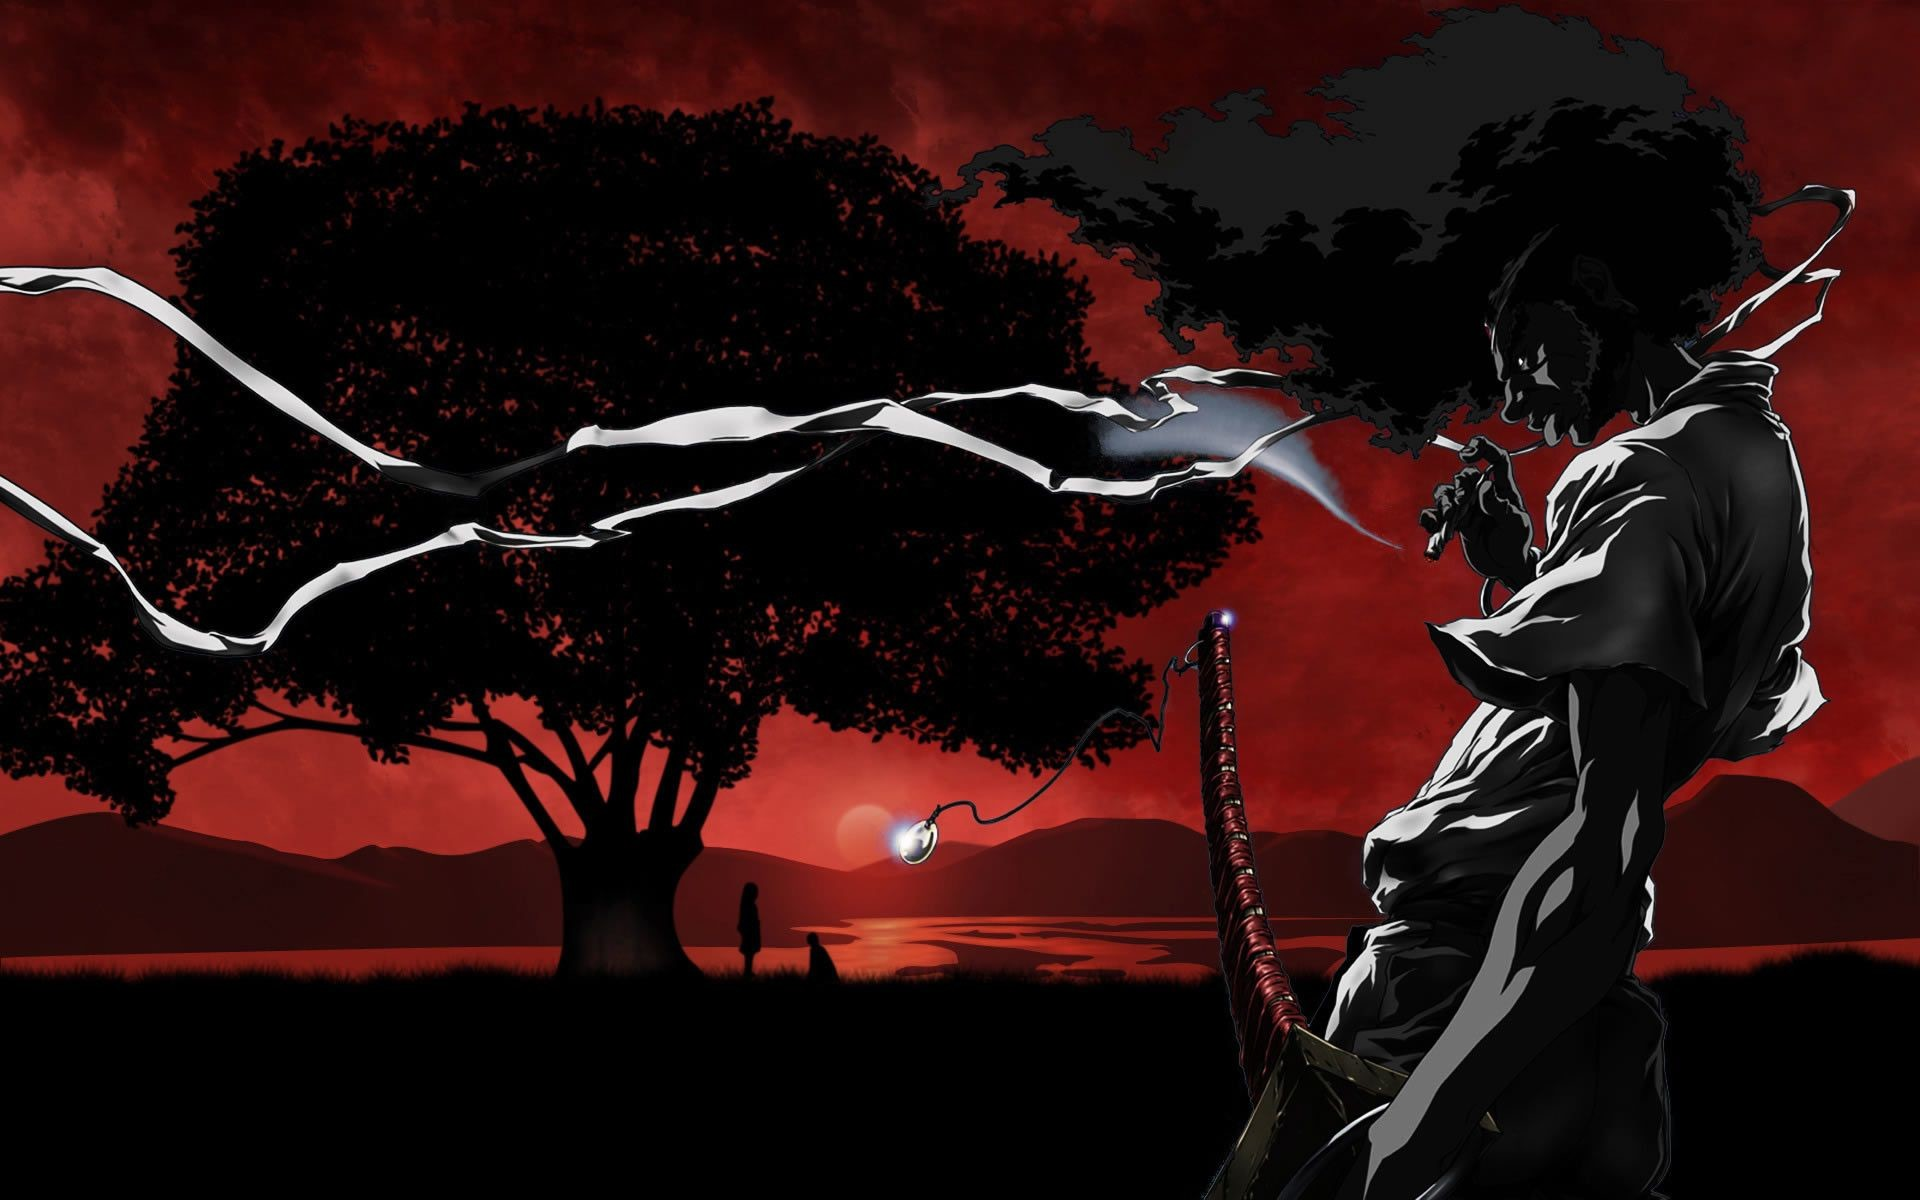 Epic anime wallpapers hd 59 images - Dark anime hd wallpaper ...